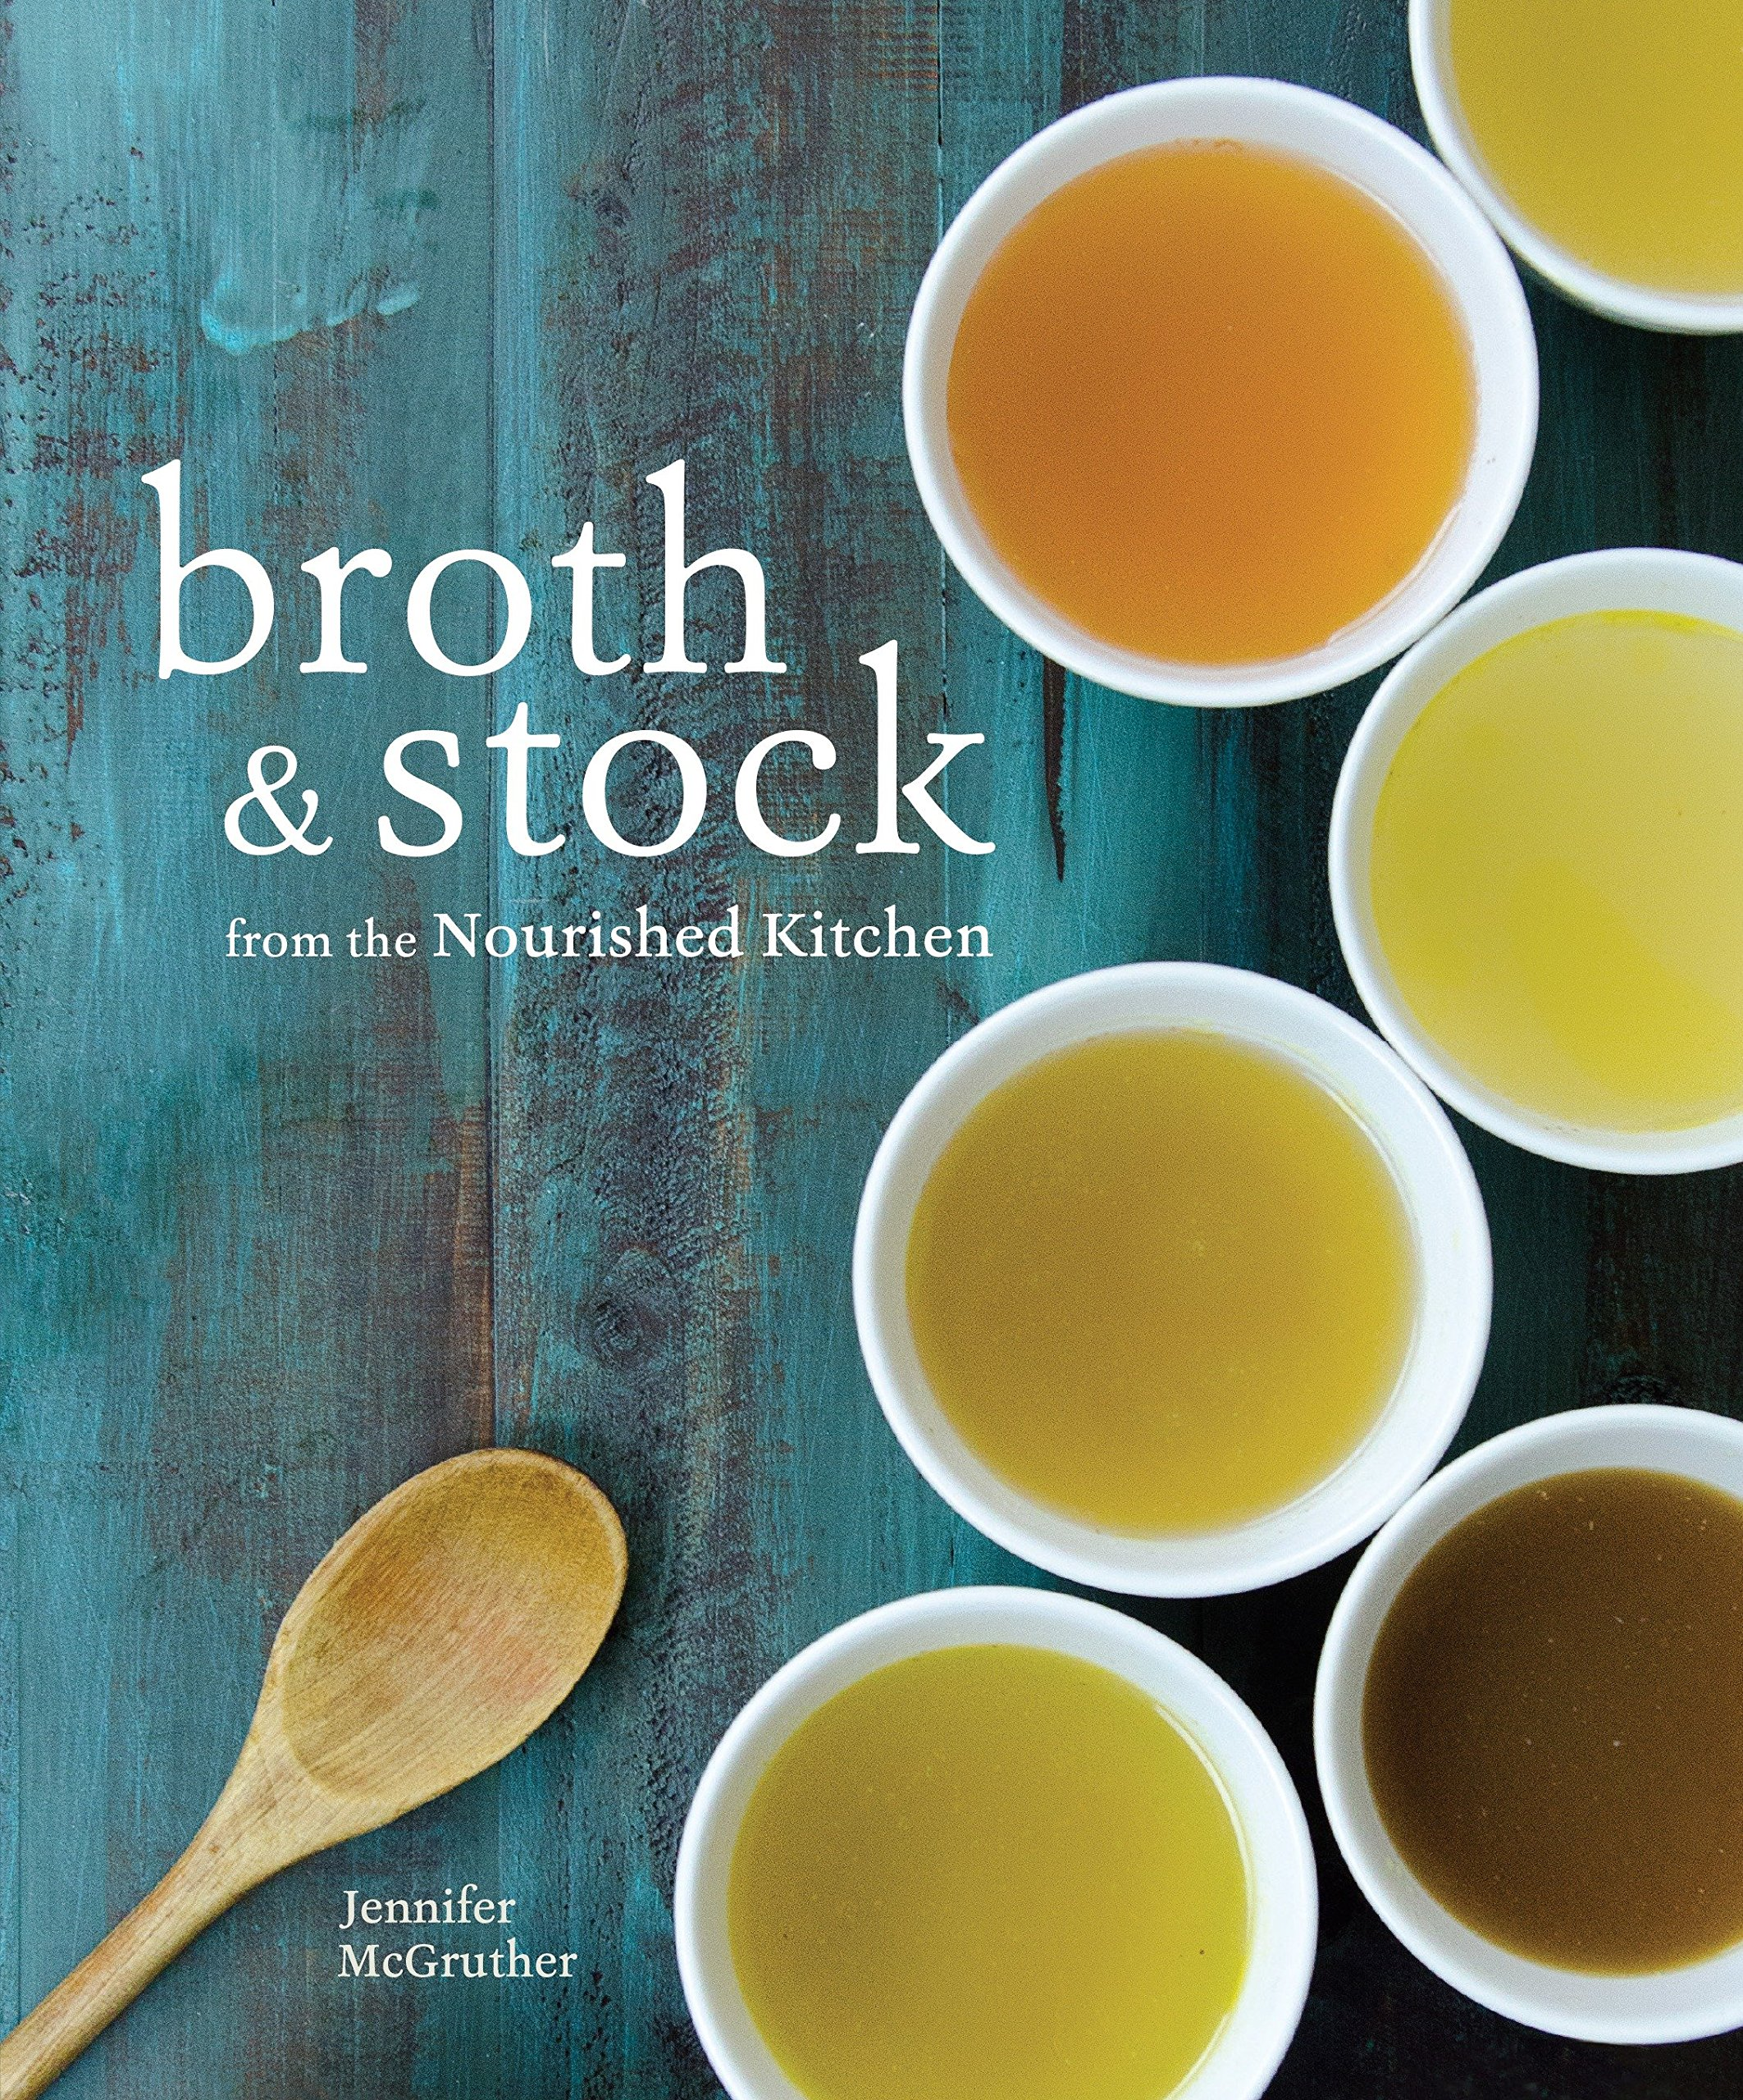 Download Broth and Stock from the Nourished Kitchen: Wholesome Master Recipes for Bone, Vegetable, and Seafood Broths and Meals to Make with Them ebook